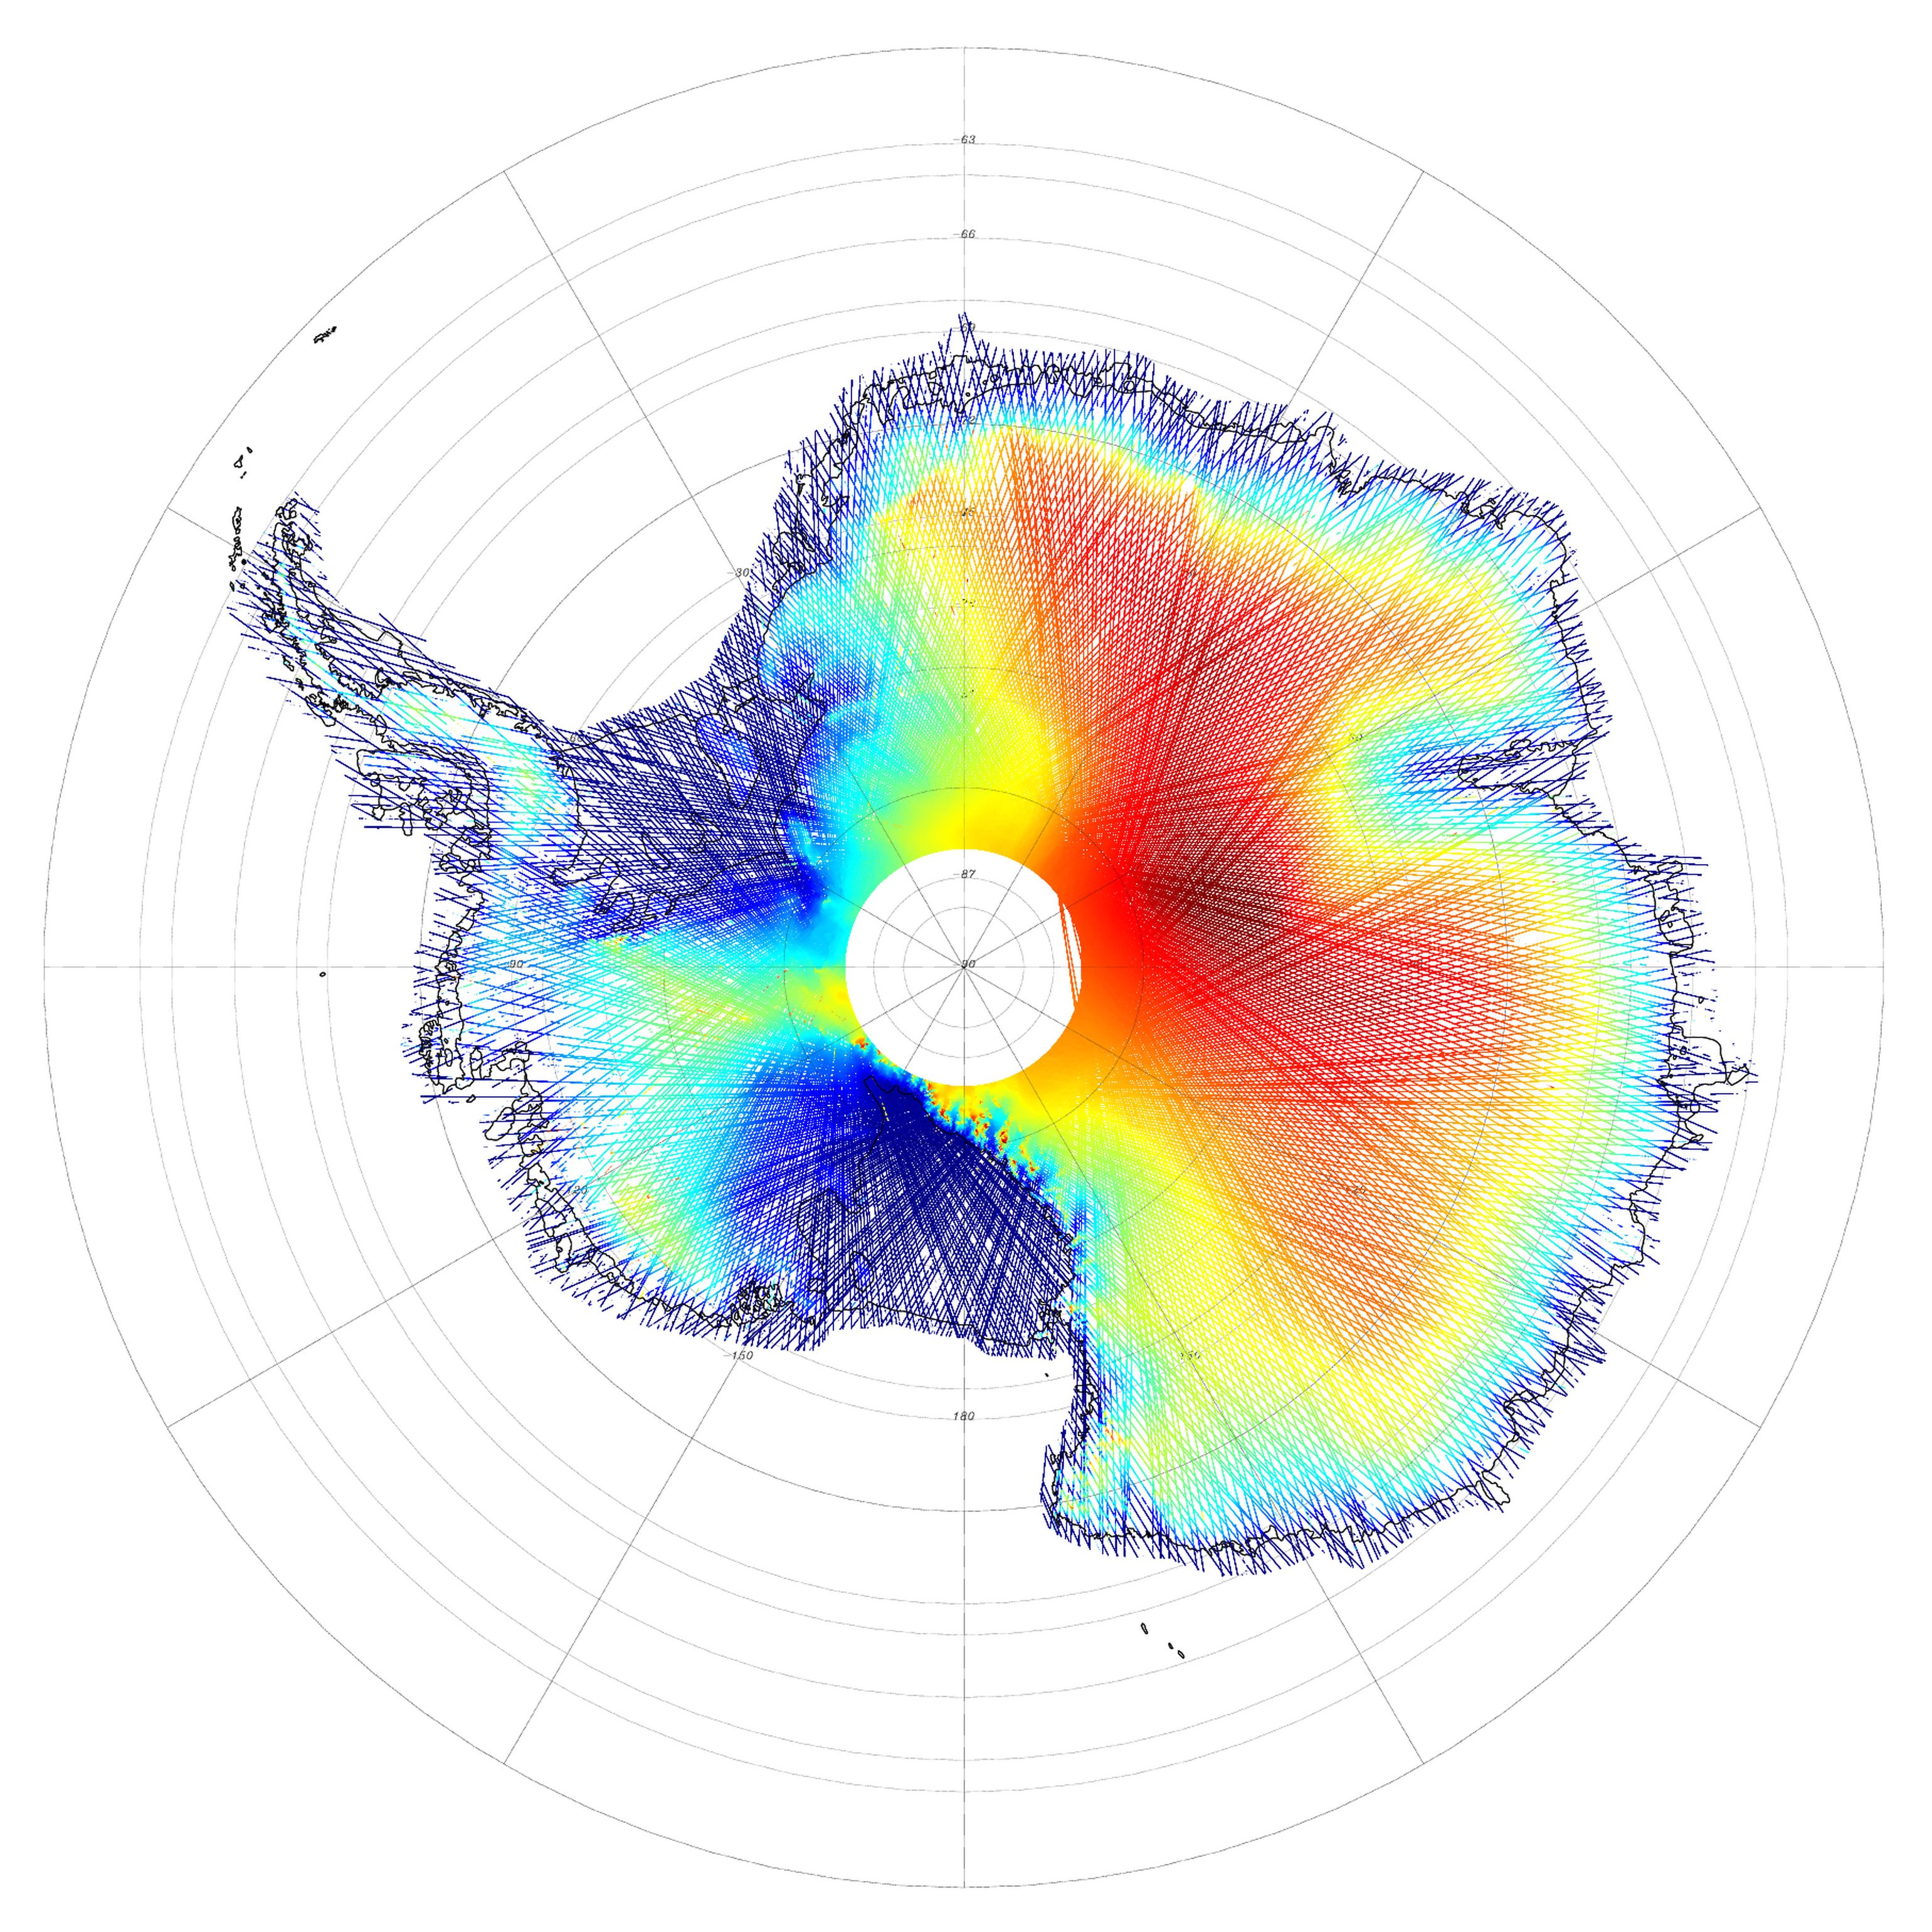 Antarcticas Land and Ice Elevation Image of the Day